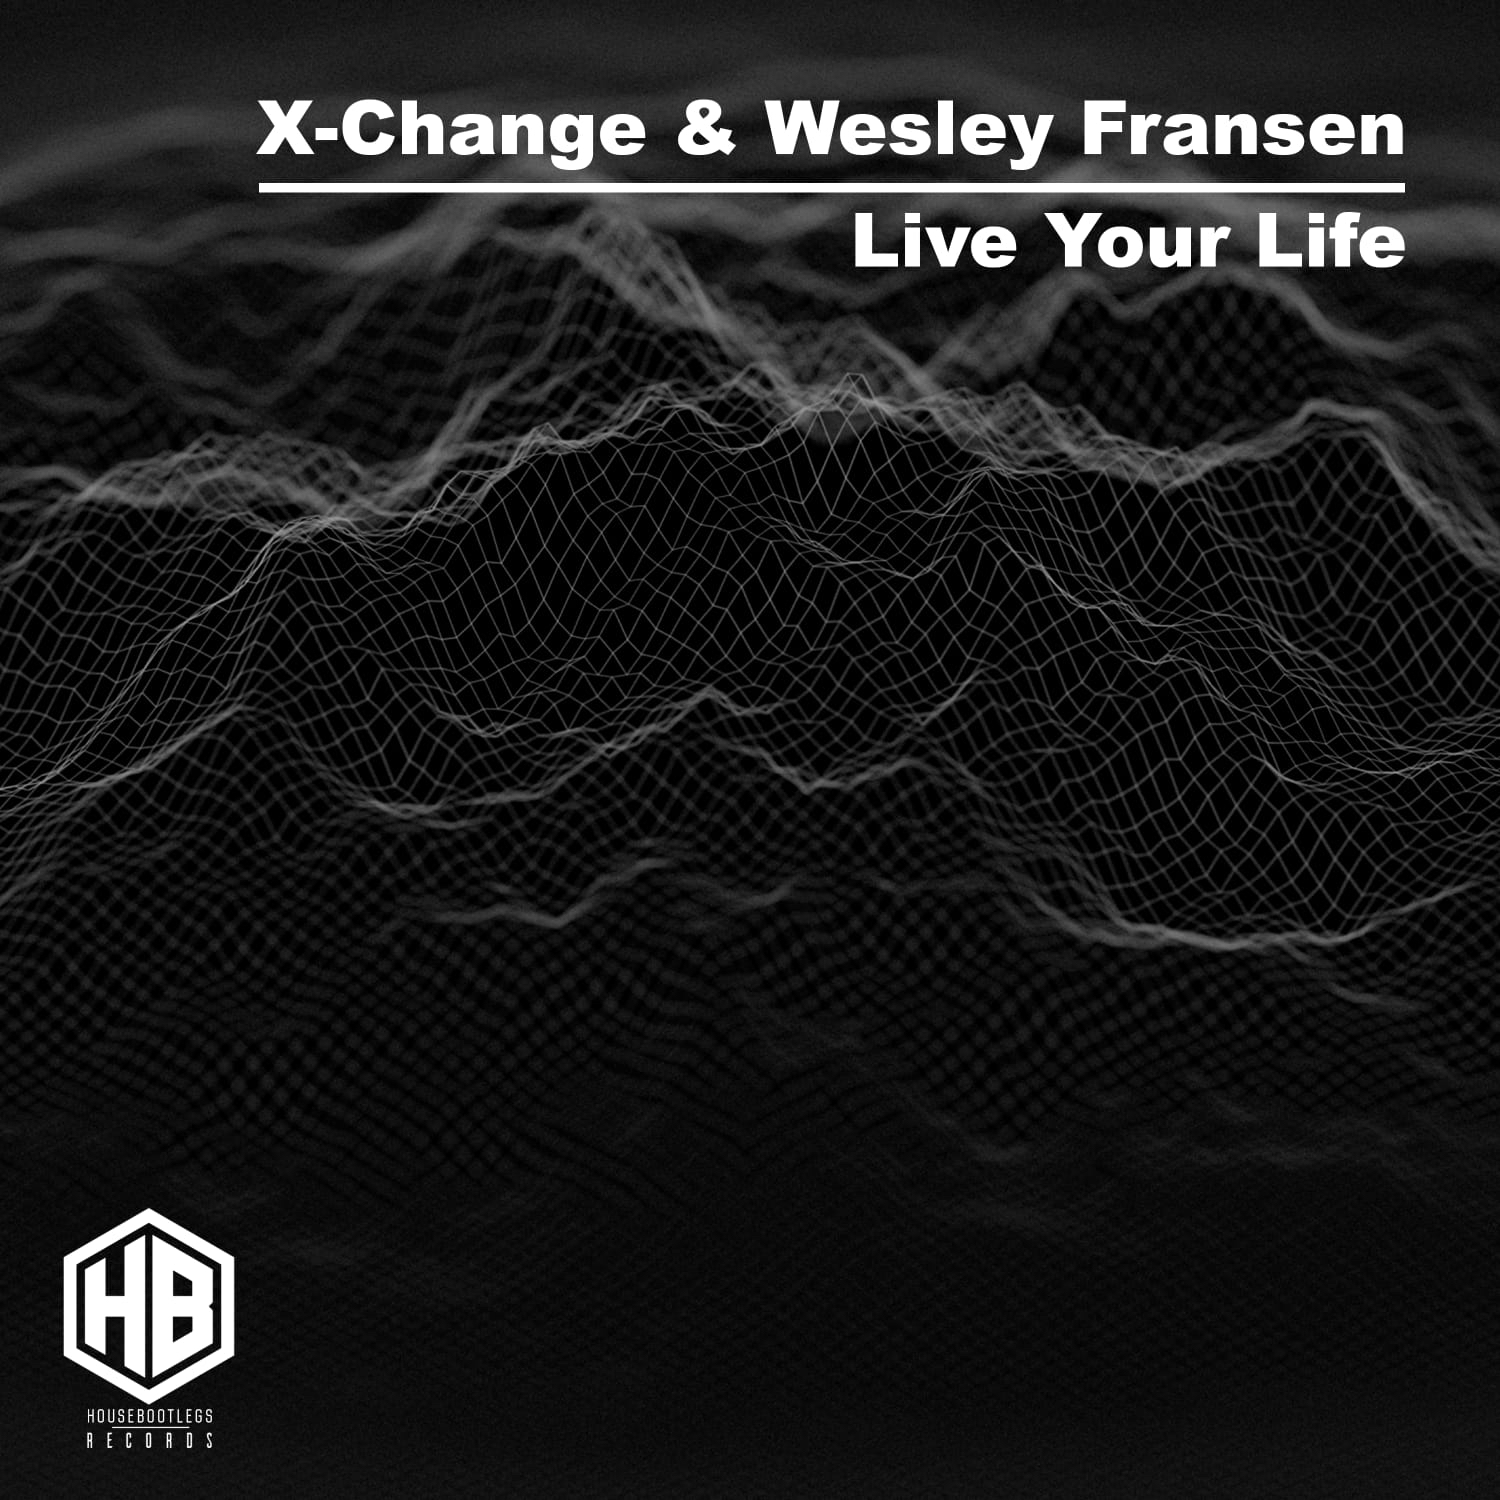 X-Change & Wesley Fransen - Live Your Life ARTWORK FINAL